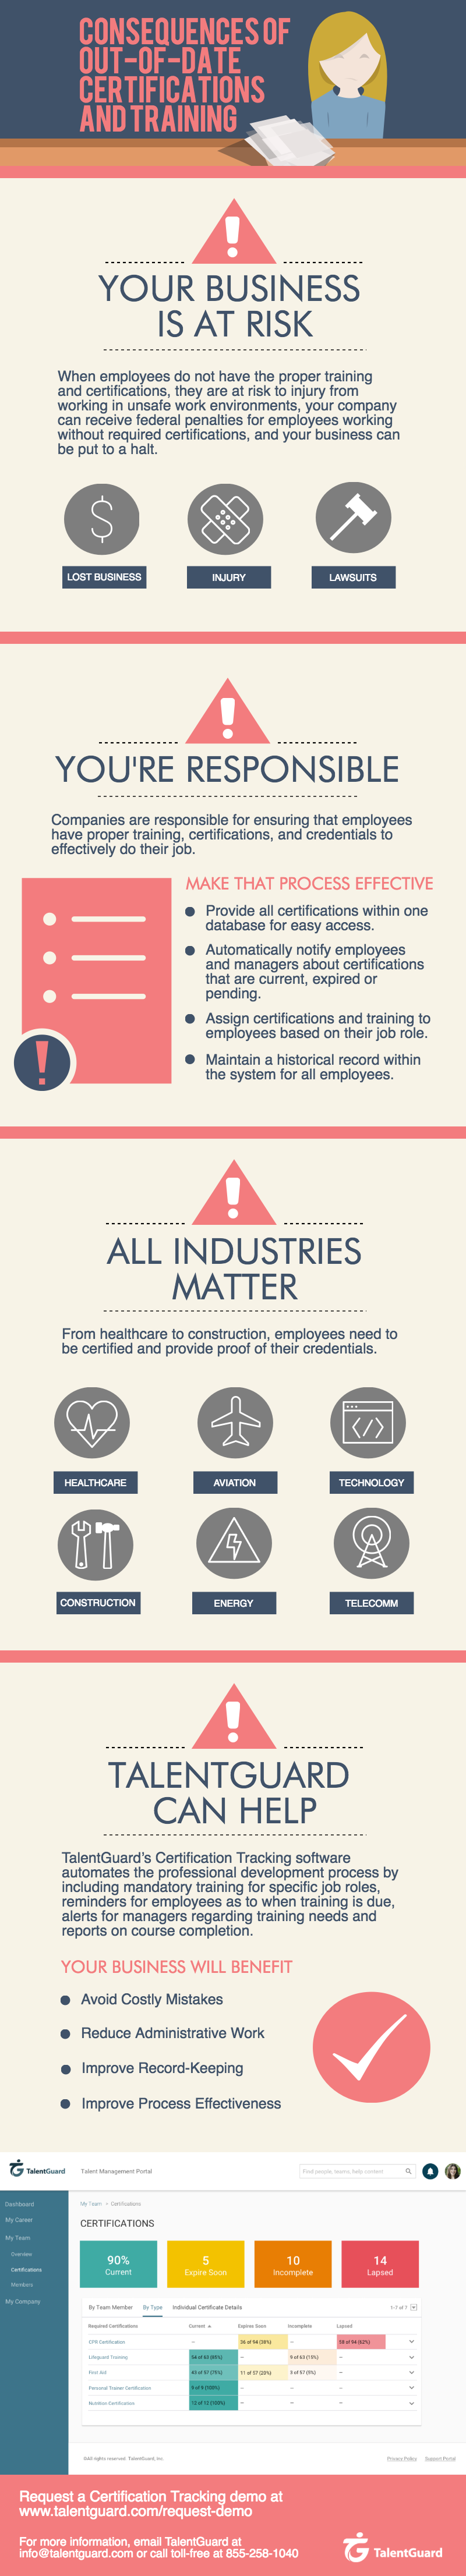 Consequences of Out-of-date certifications and Training infographic